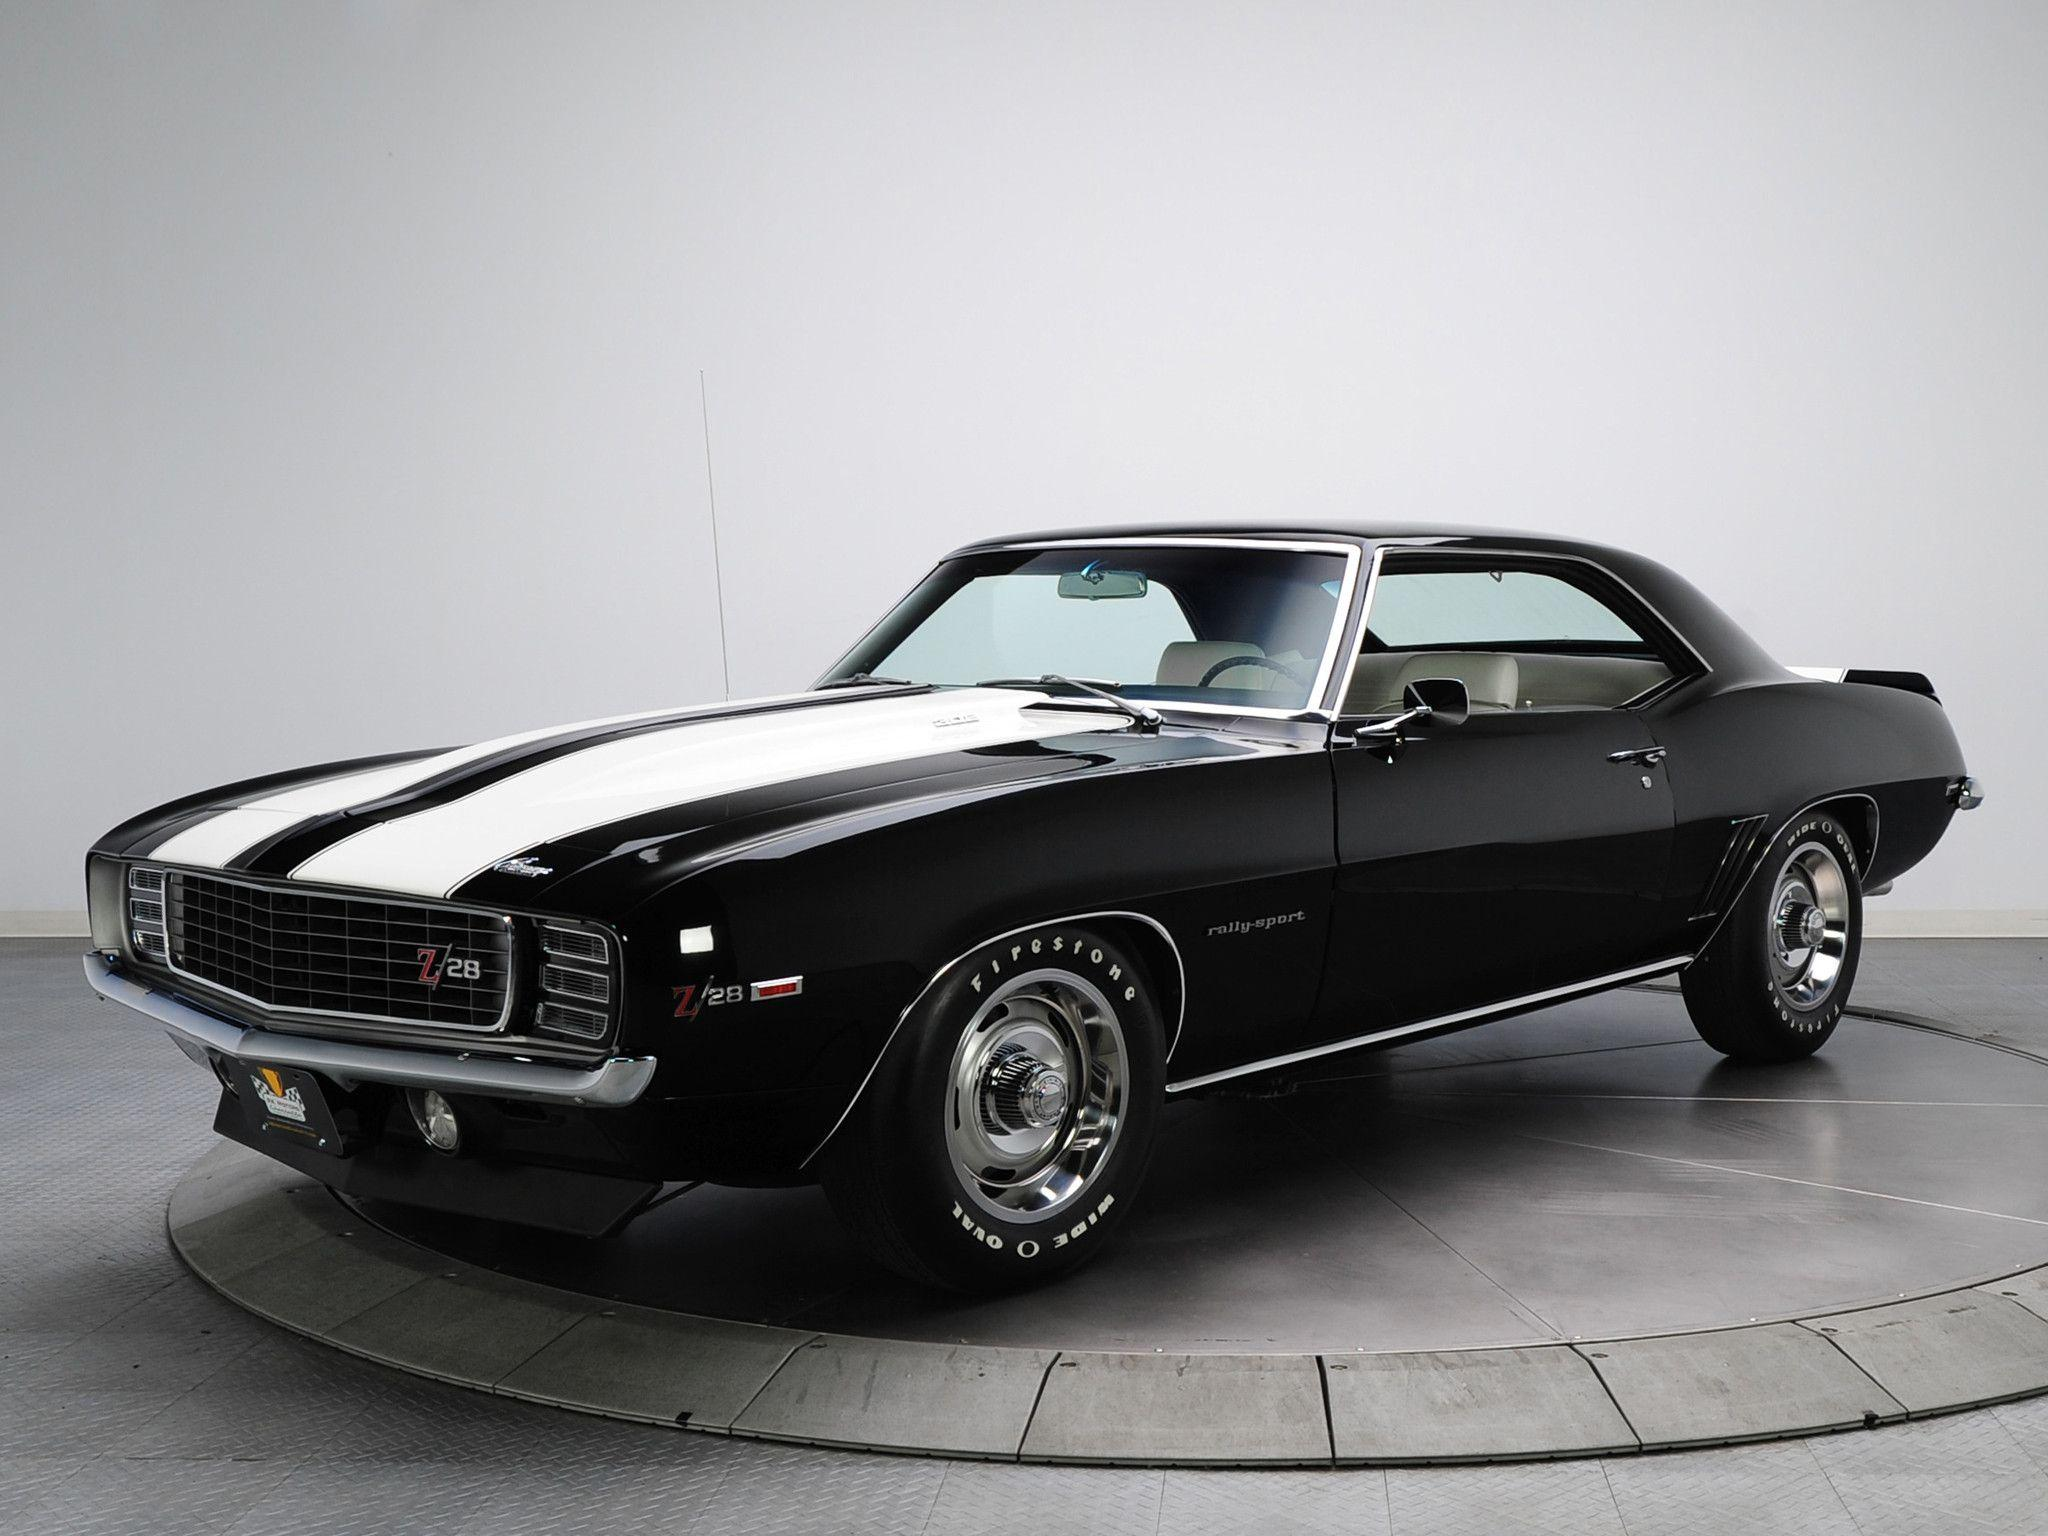 chevrolet camaro 1969 z28. chevrolet wallpapers camaro z28 rs 1969 o